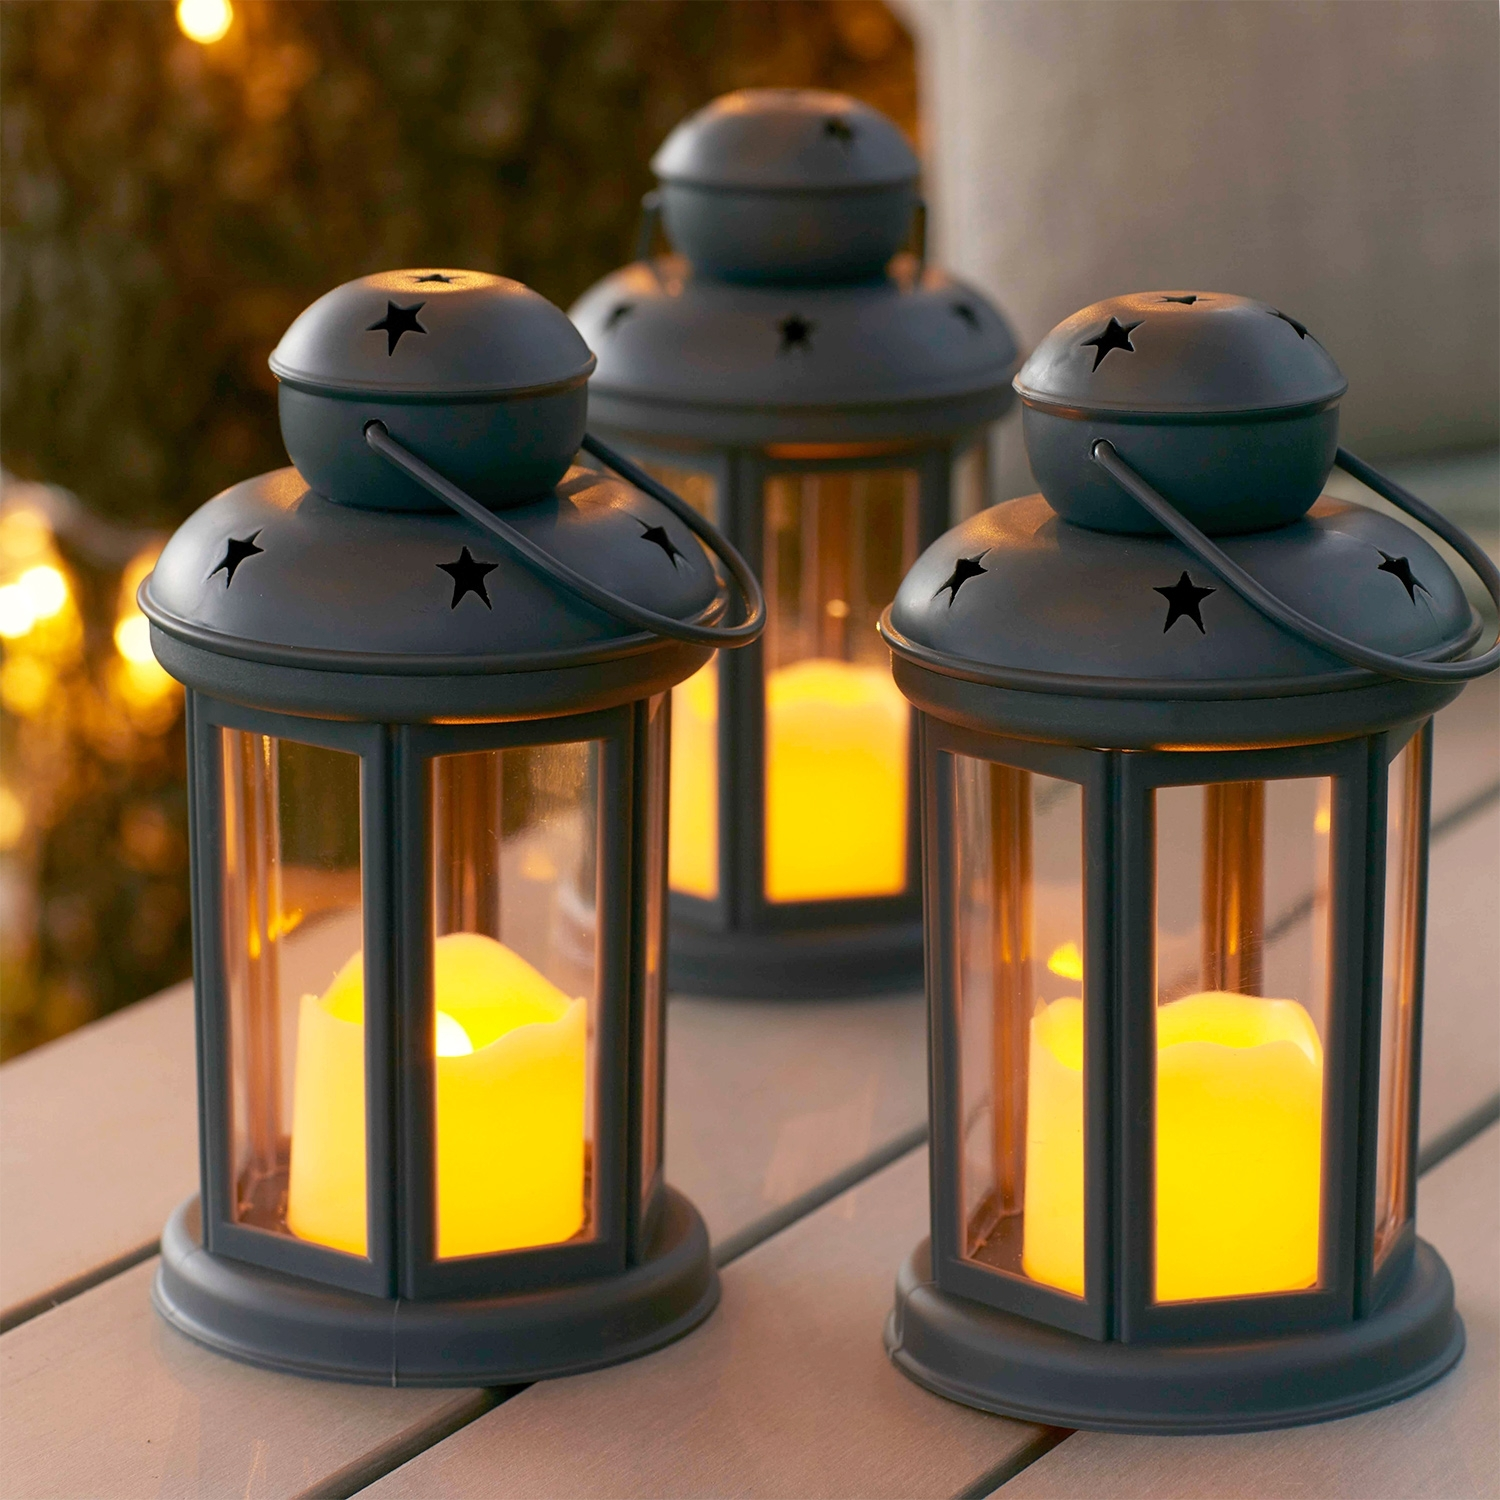 Set Of 3 Grey Battery Operated Led Indoor Outdoor Flameless Candle Regarding Outdoor Lanterns With Battery Candles (View 14 of 20)